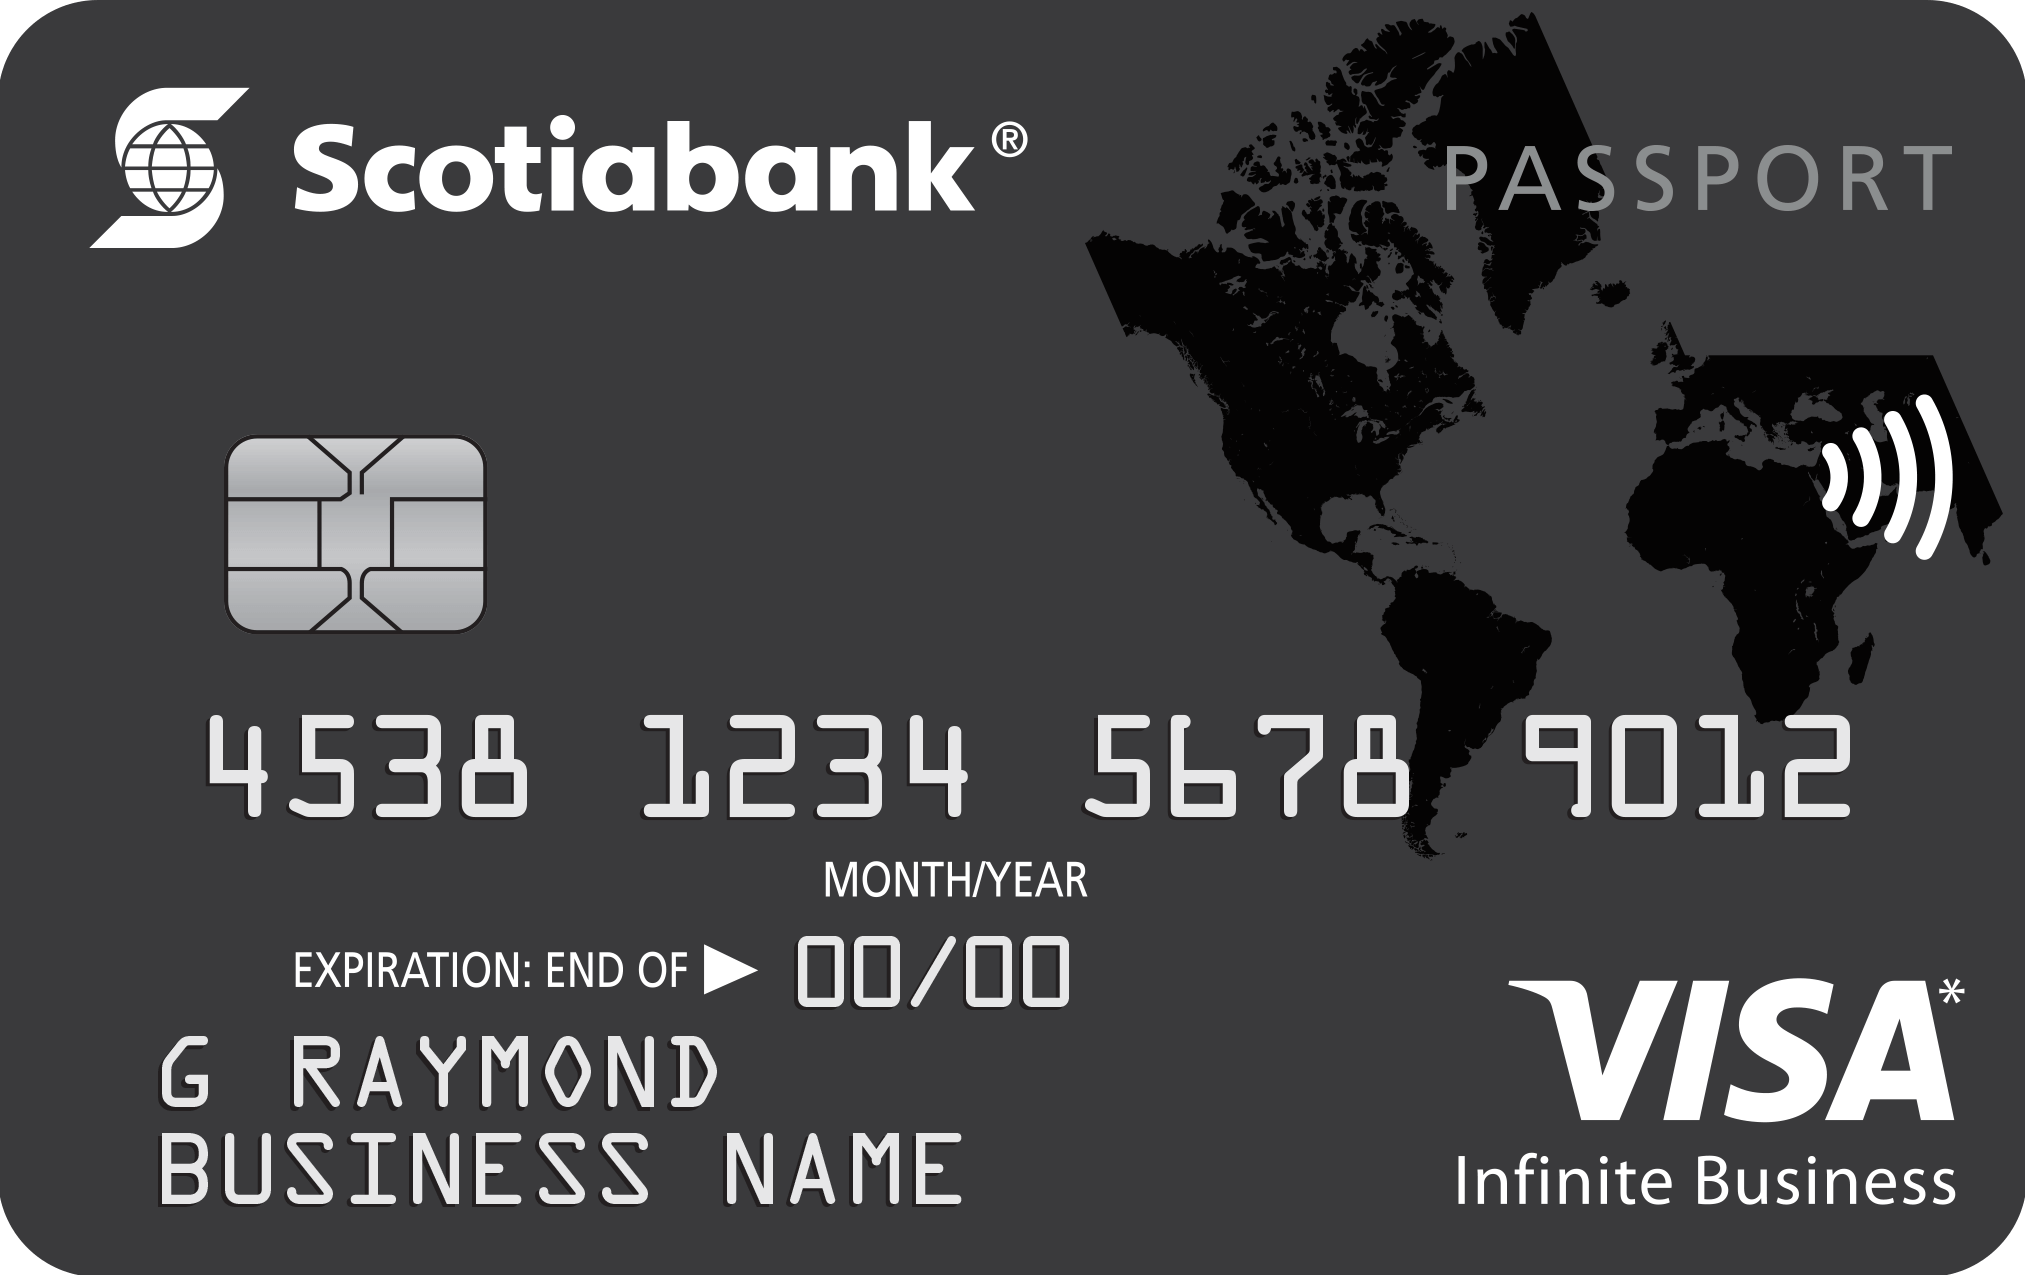 Scotiabank Passport™ Visa Infinite Business* Card